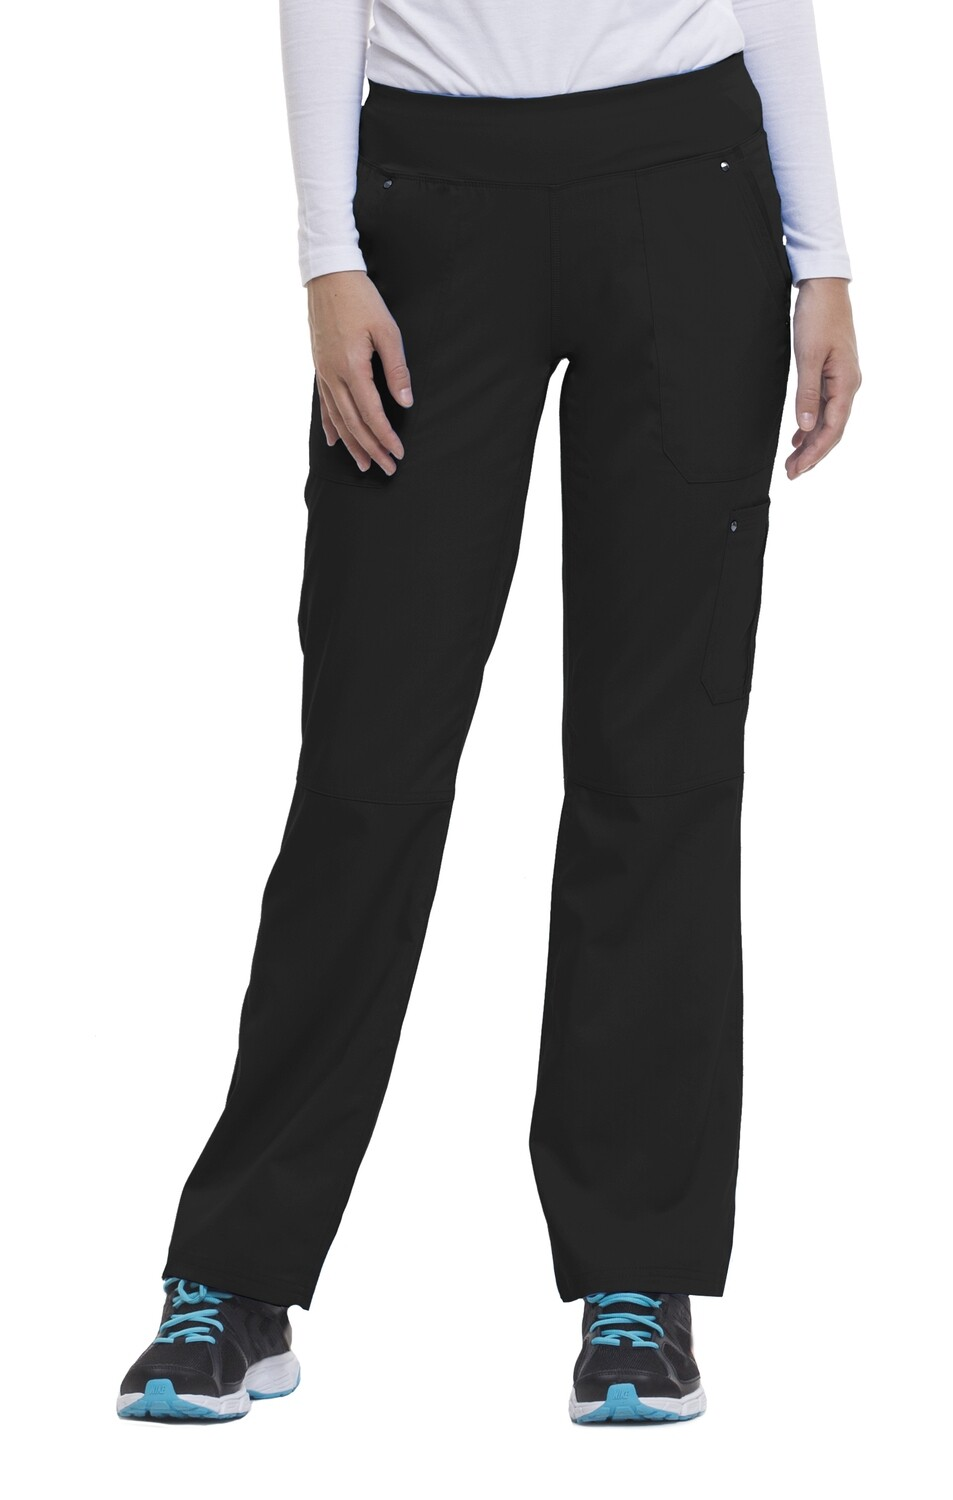 9133 BLACK TORI PANT - PL 2XL